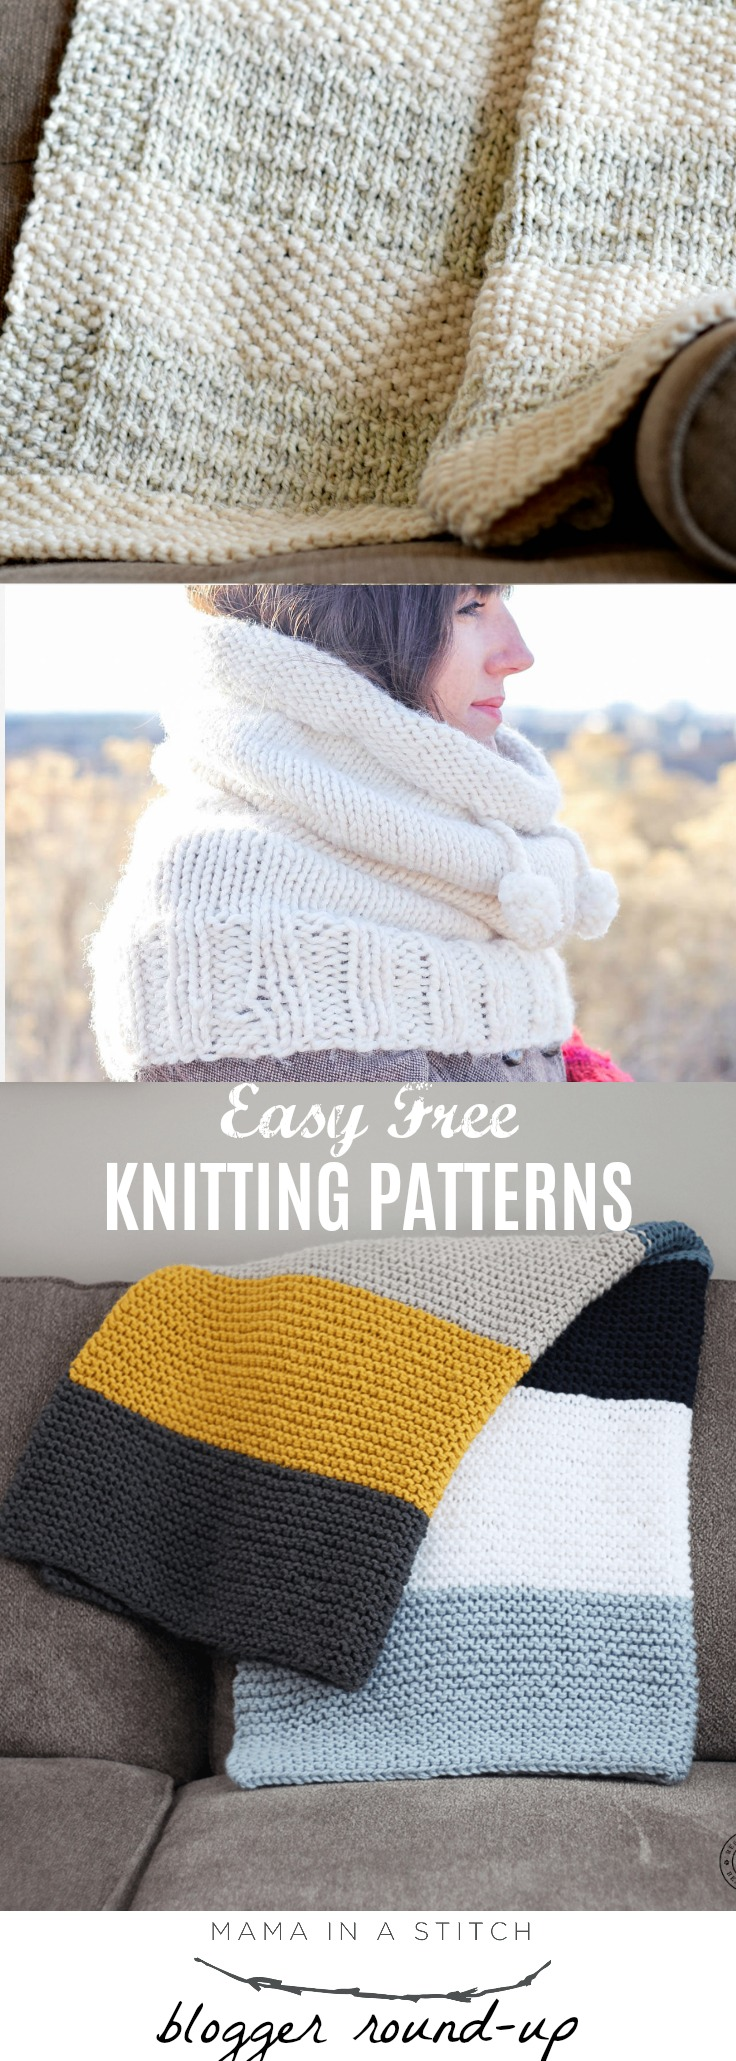 0d7c62ffa Easy Knitting Patterns To Try – Mama In A Stitch